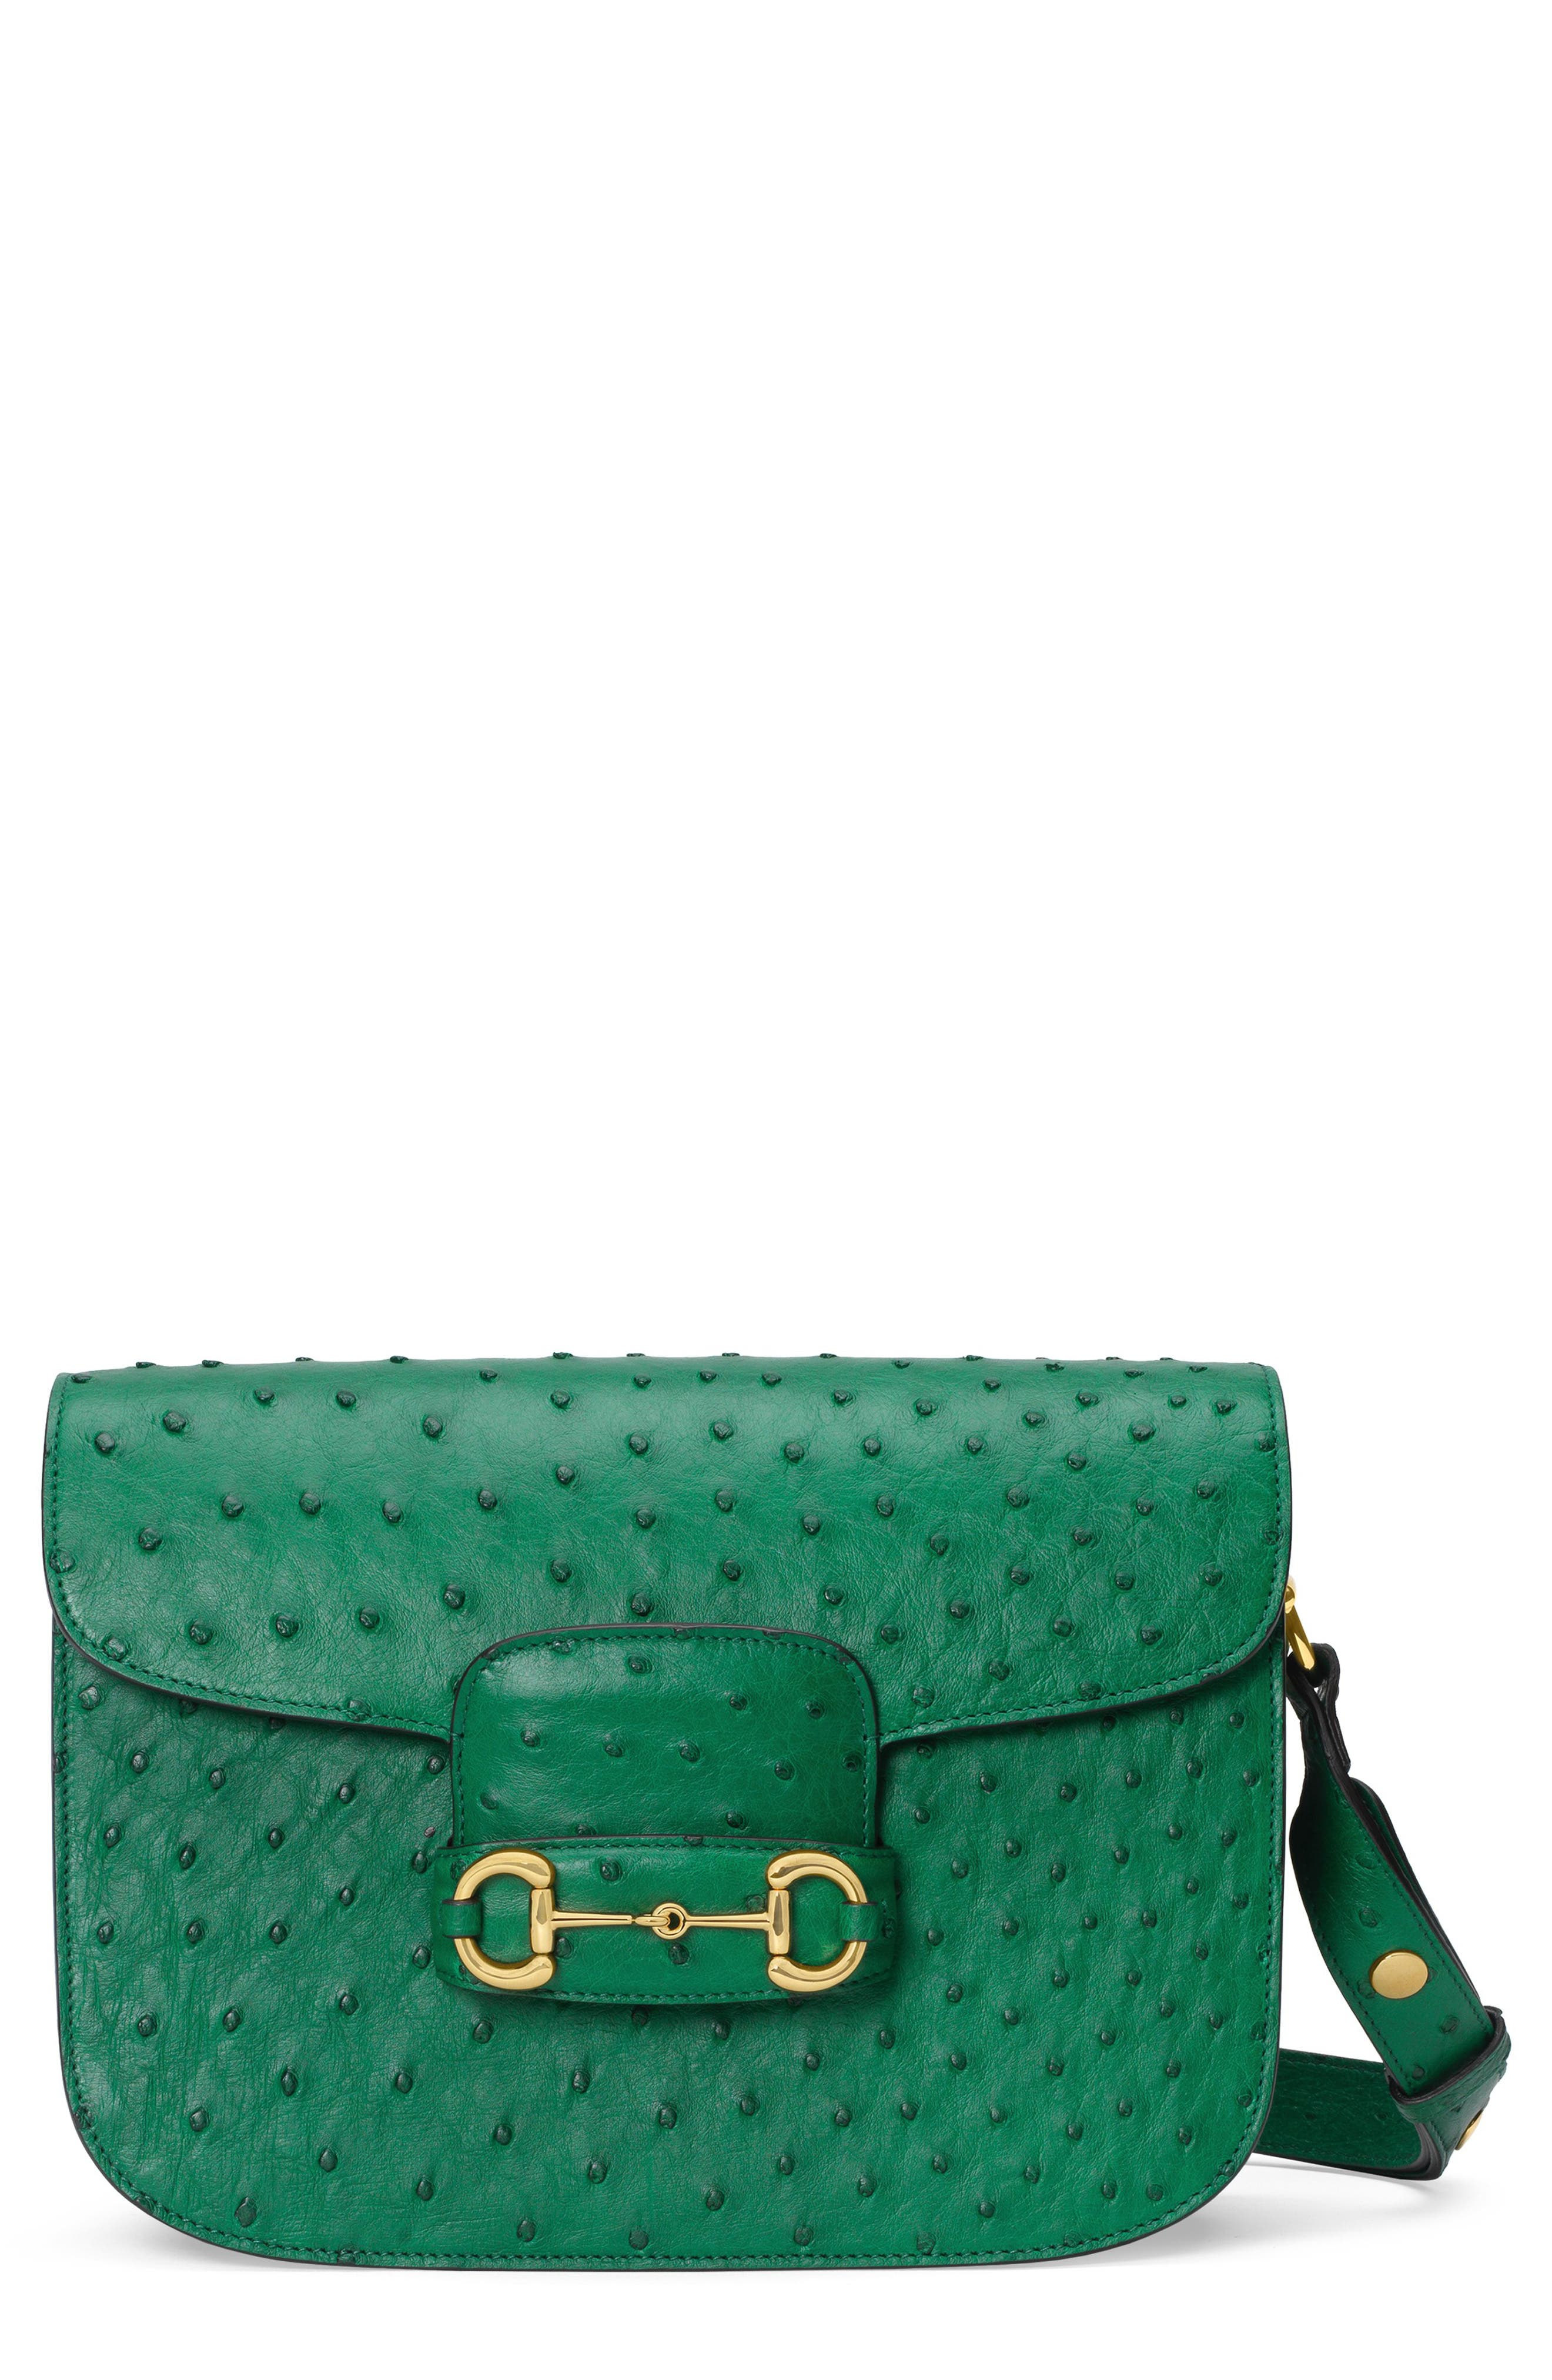 Pre-order this style today! Add to Shopping Bag to view approximate ship date. You\\\'ll be charged only when your item ships.A new design for the season based on a classic from the 1950s, this shoulder bag highlights the house horsebit with gleaming hardware at the flap and sides. The style is made from genuine ostrich skin, with its distinctive texture highlighted in a rich emerald green hue. Style Name: Gucci 1955 Horsebit Ostrich Shoulder Bag.